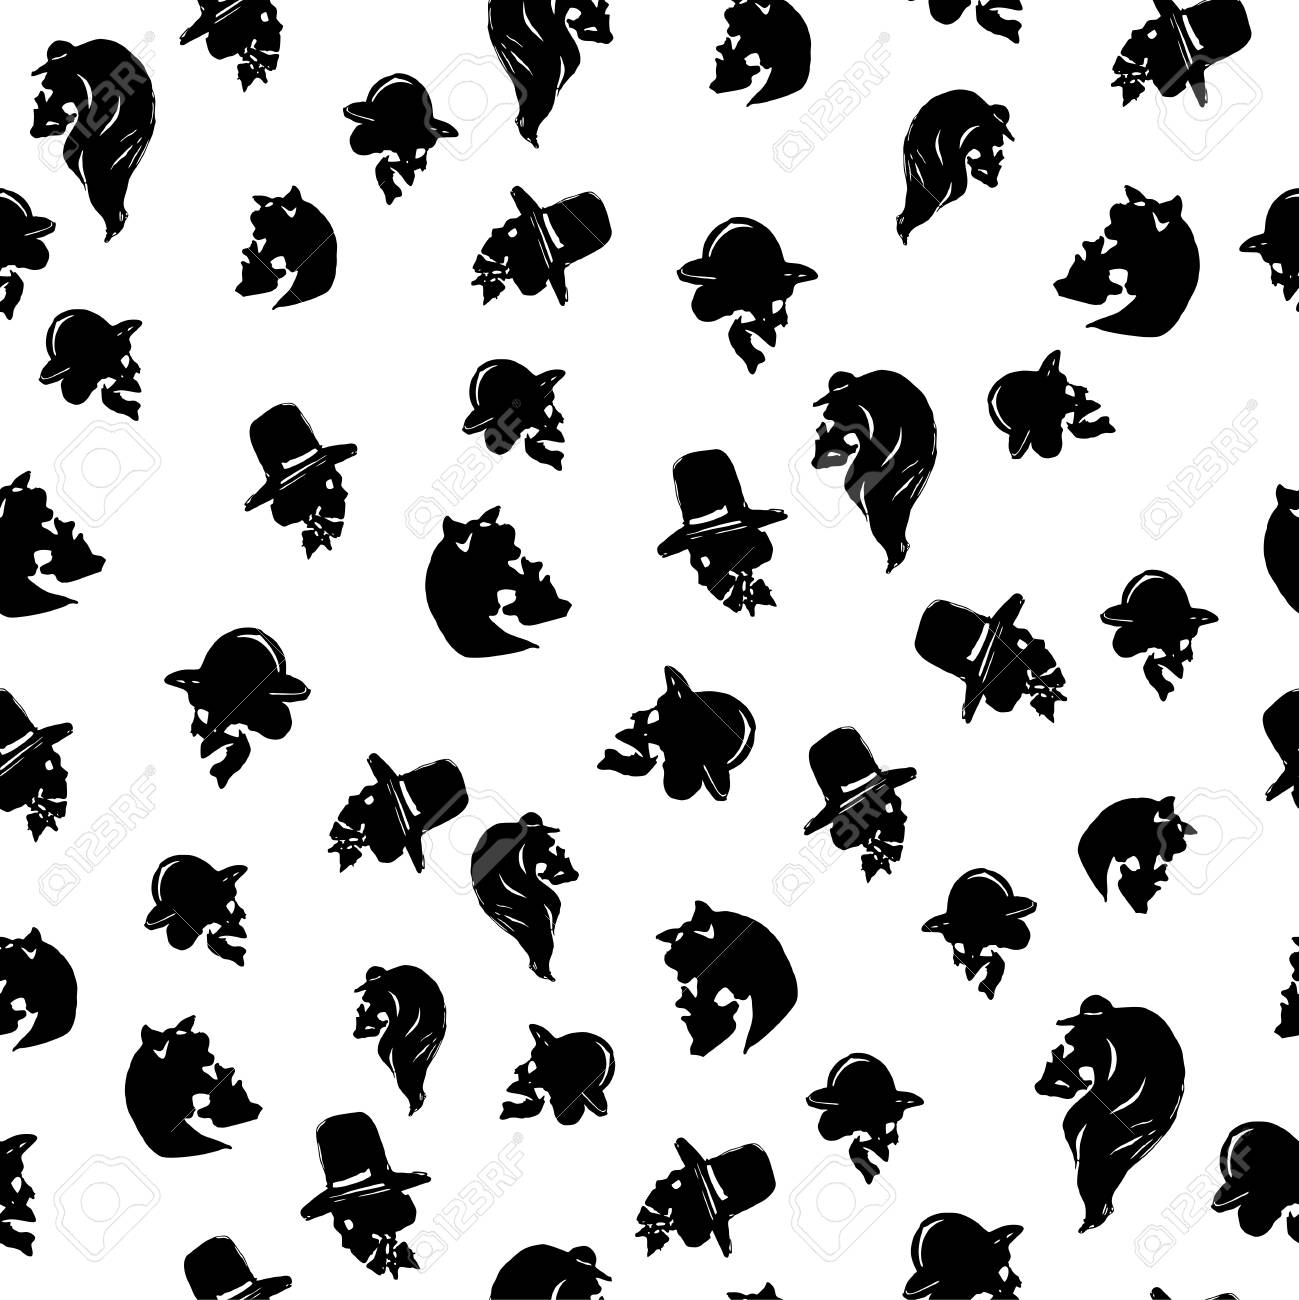 Male and female skulles in hats of different types black seamless male and female skulles in hats of different types black seamless pattern on white background kristyandbryce Images